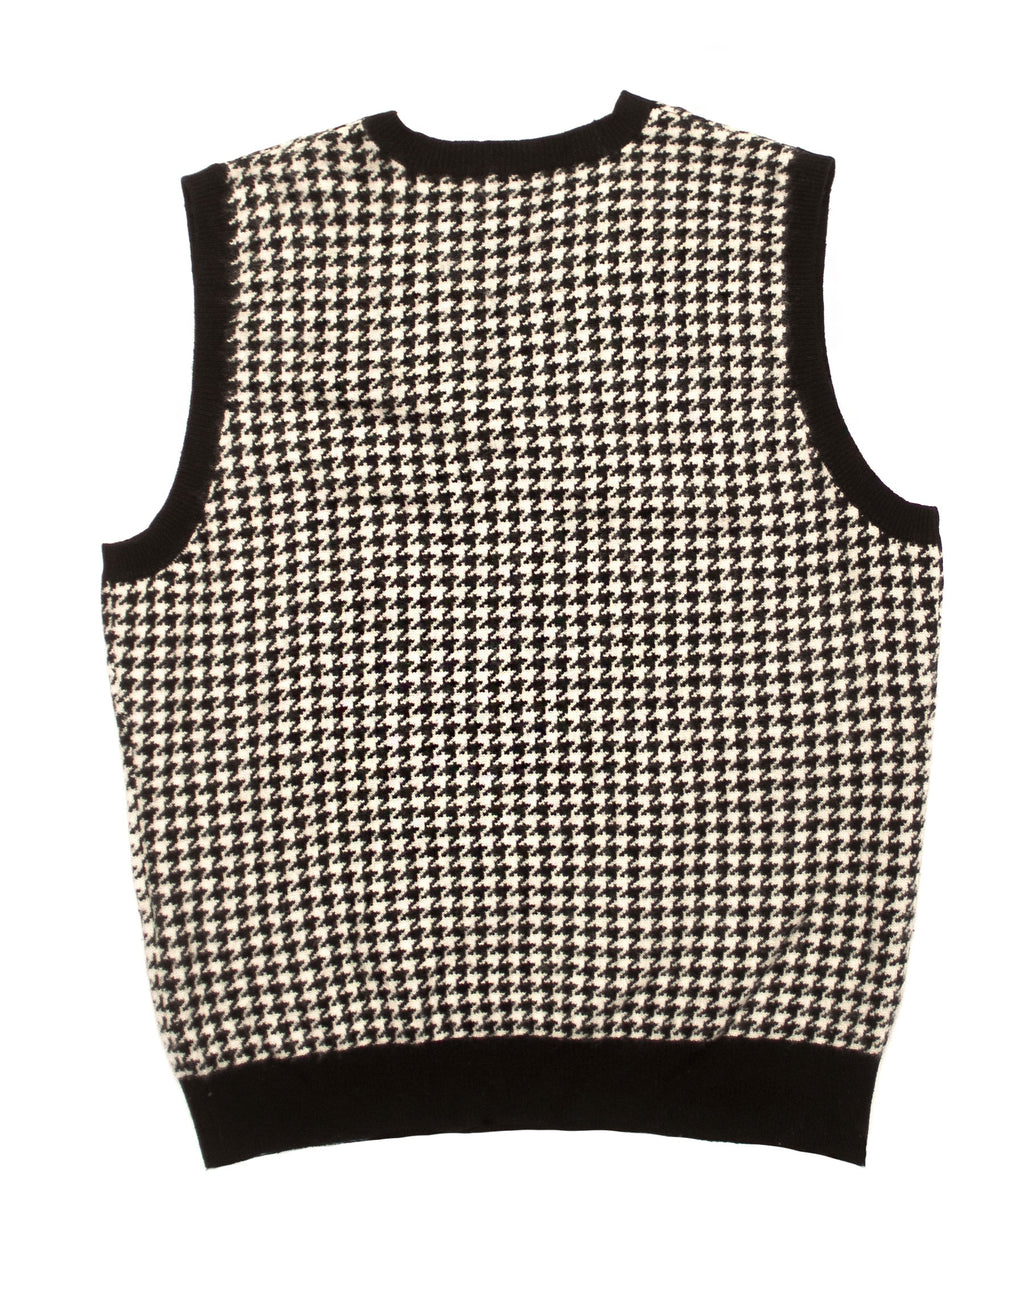 RALPH LAUREN SLEEVELESS SWEATER VEST